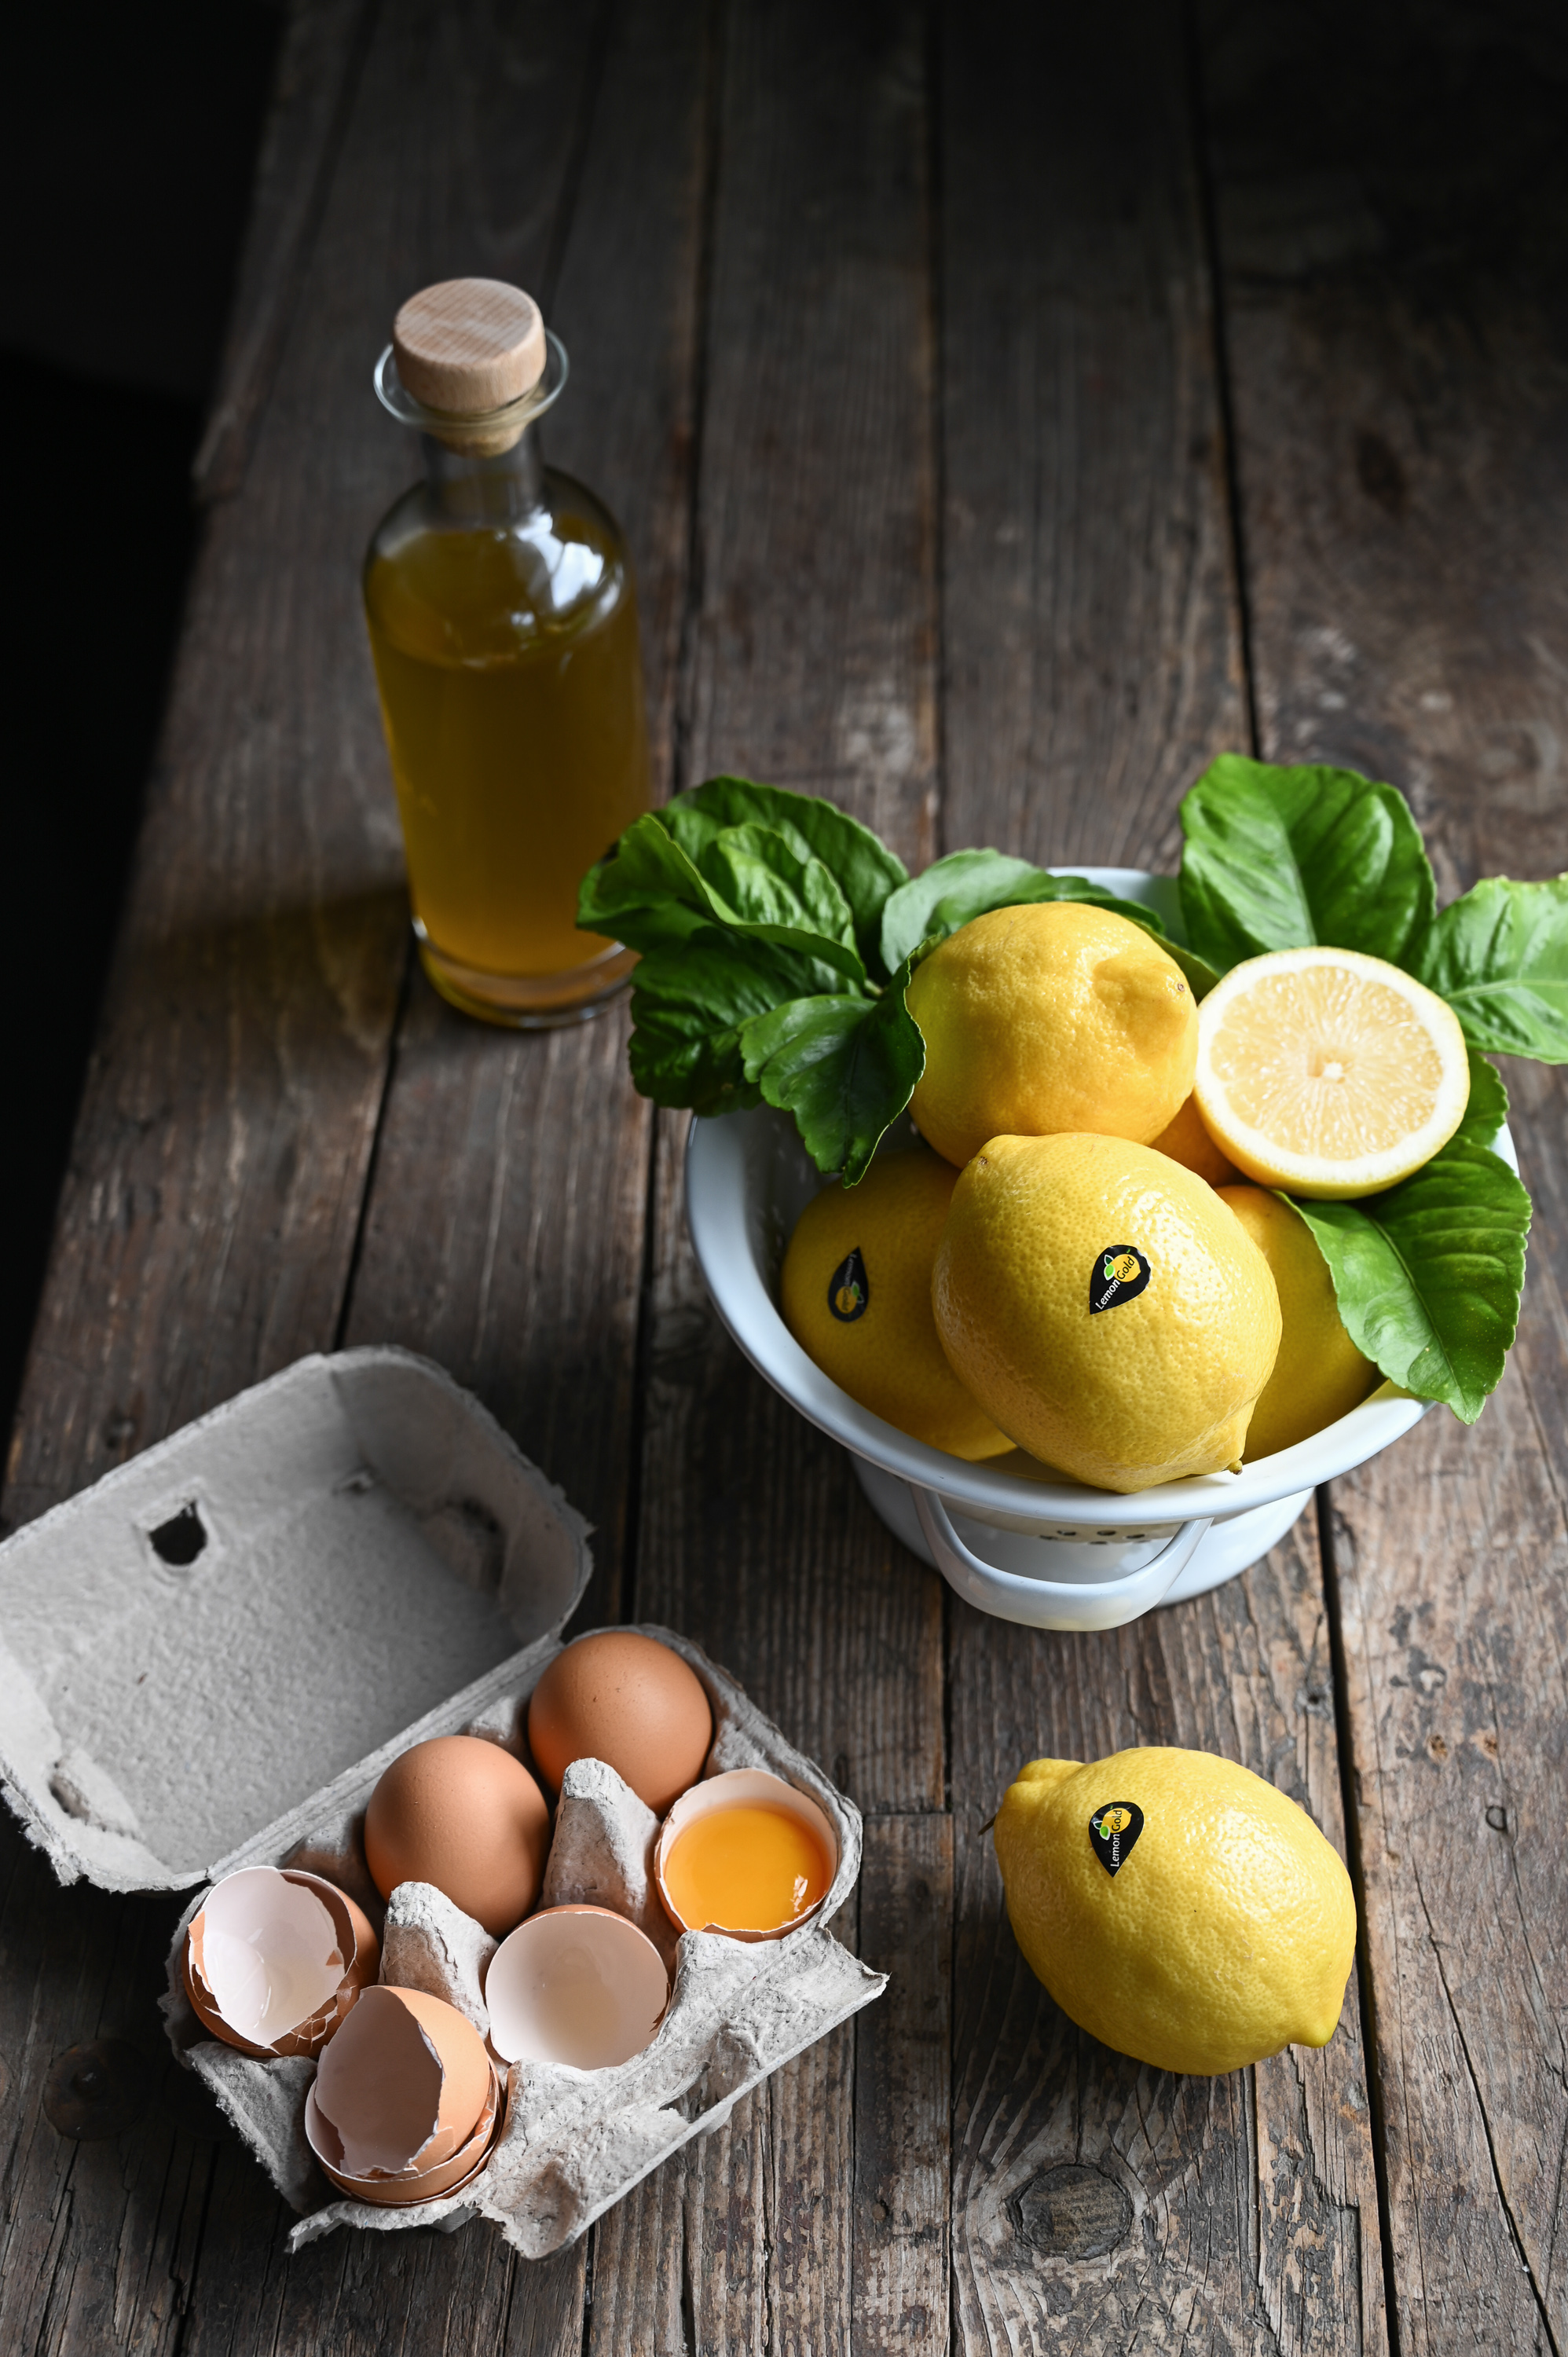 LEMONGOLD, OLIVE OIL AND ALMOND CAKE